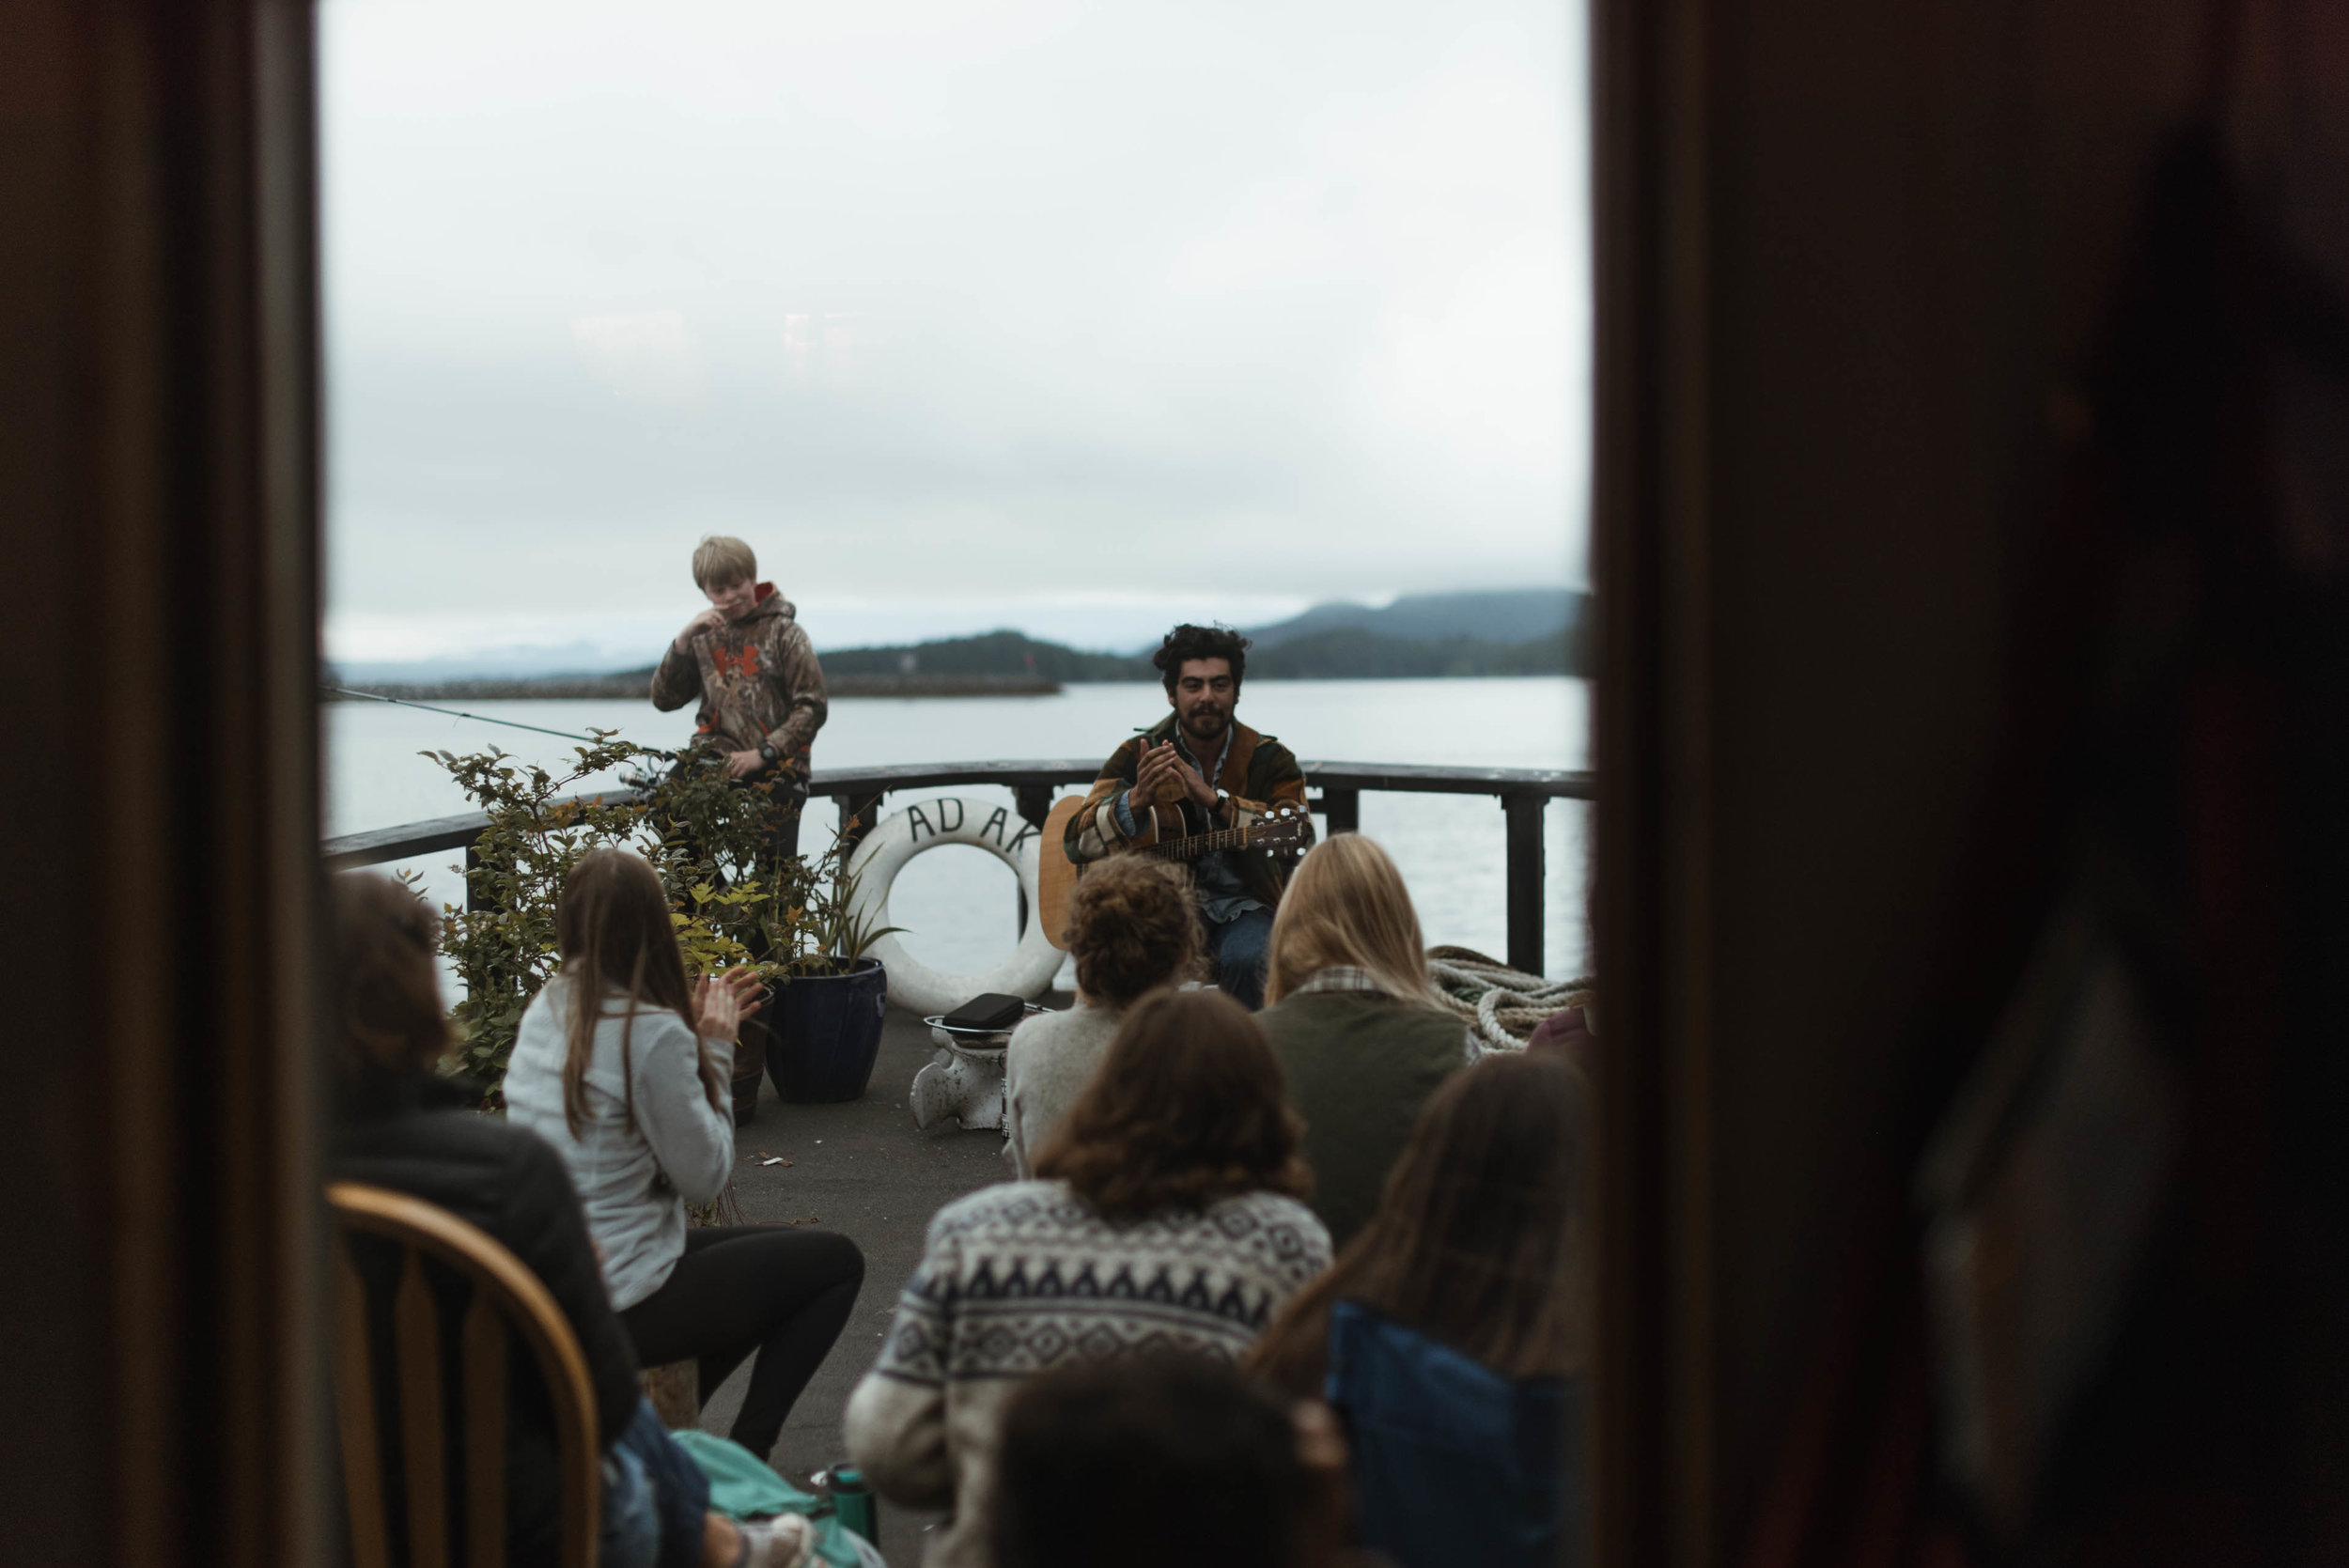 Sitka Alaksa tugboat concert with R.O. Shapiro - Kendall Rock Photography